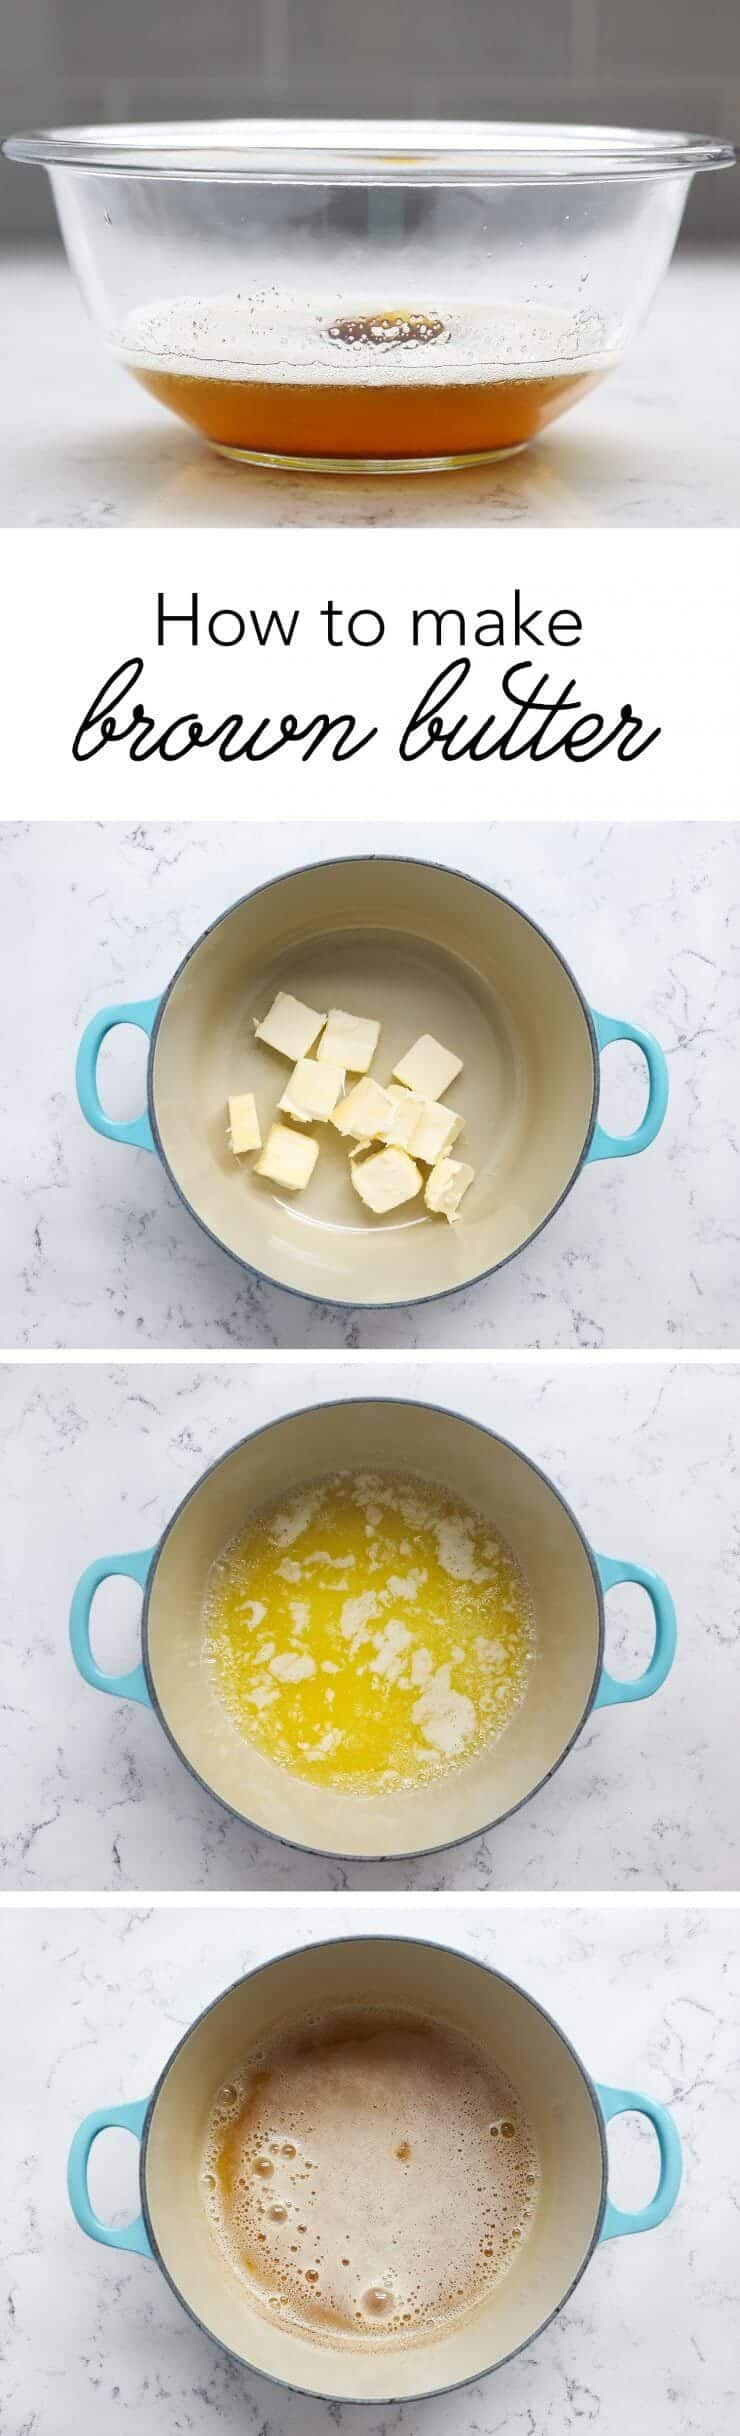 Step by step tutorial on how to make Brown Butter. Brown Butter is the perfect way to take any recipe up a notch. Aka liquid gold!